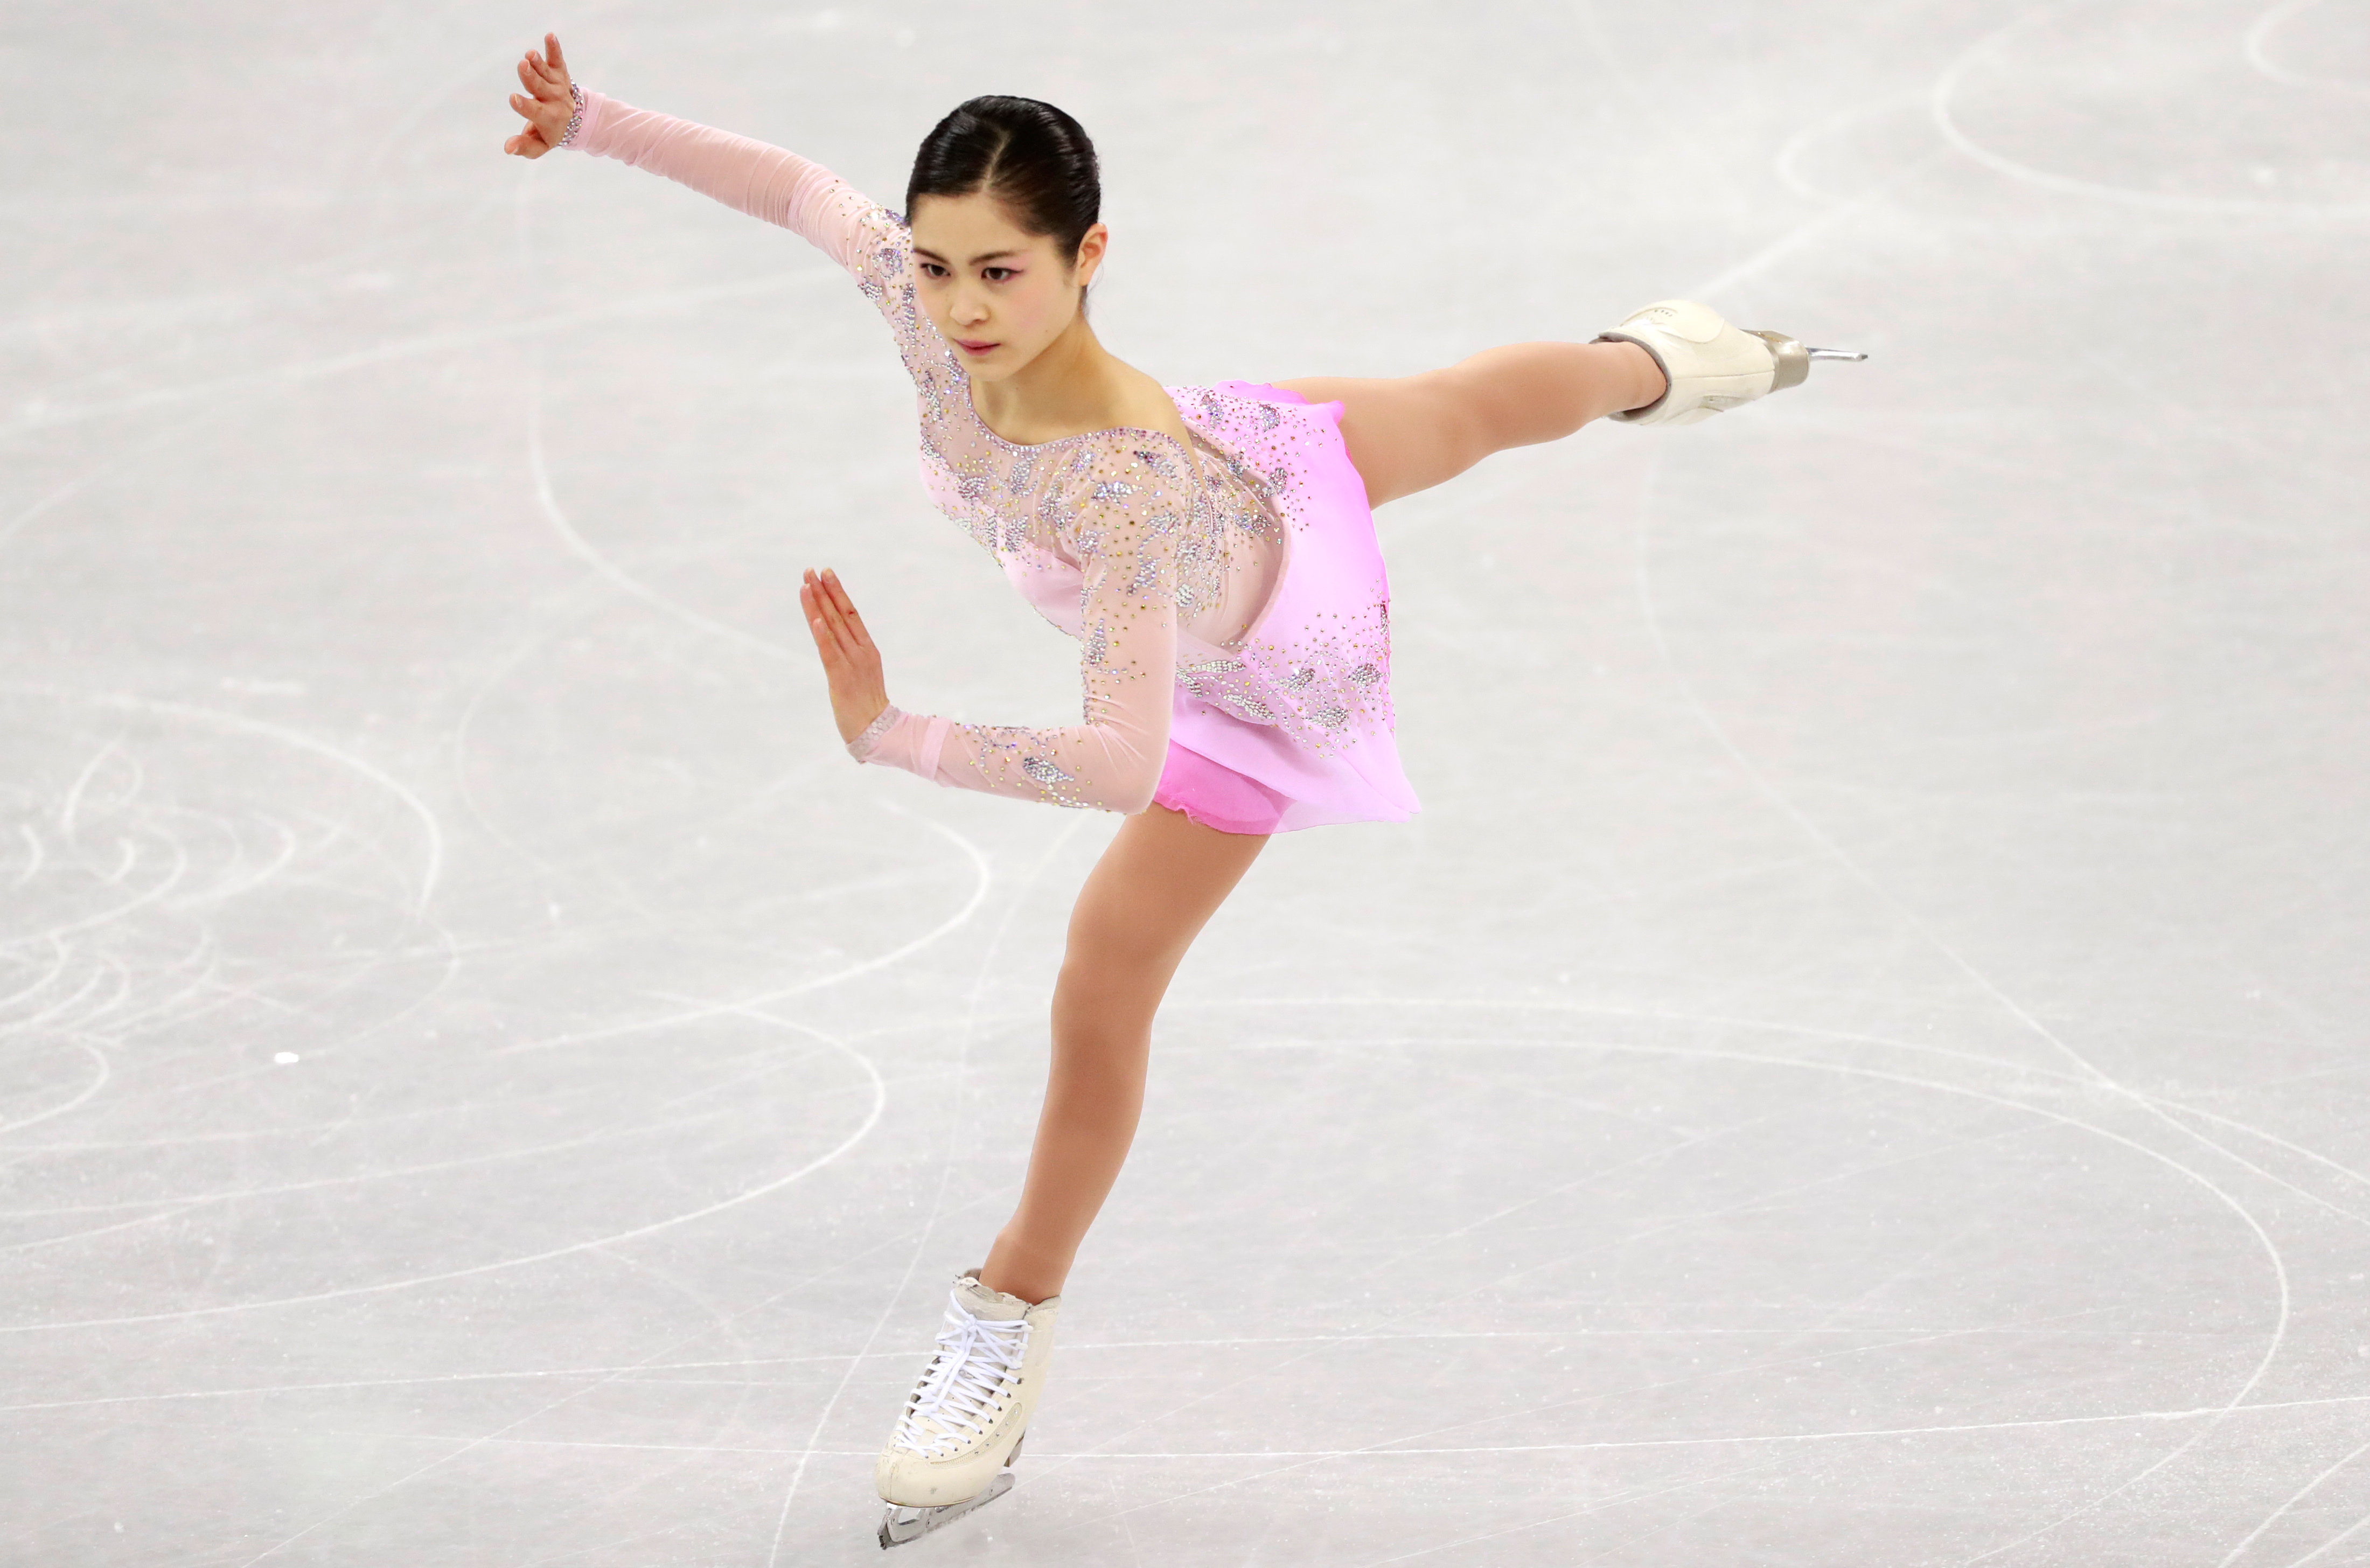 Satoko Miyahara of Japan in action during the Women Single Short Program of the Figure Skating competition at the Gangneung Ice Arena during the PyeongChang 2018 Olympic Games, South Korea, 21 February 2018.                       Figure Skating - PyeongChang 2018 Olympic Games, Gangneung, Korea - 21 Feb 2018